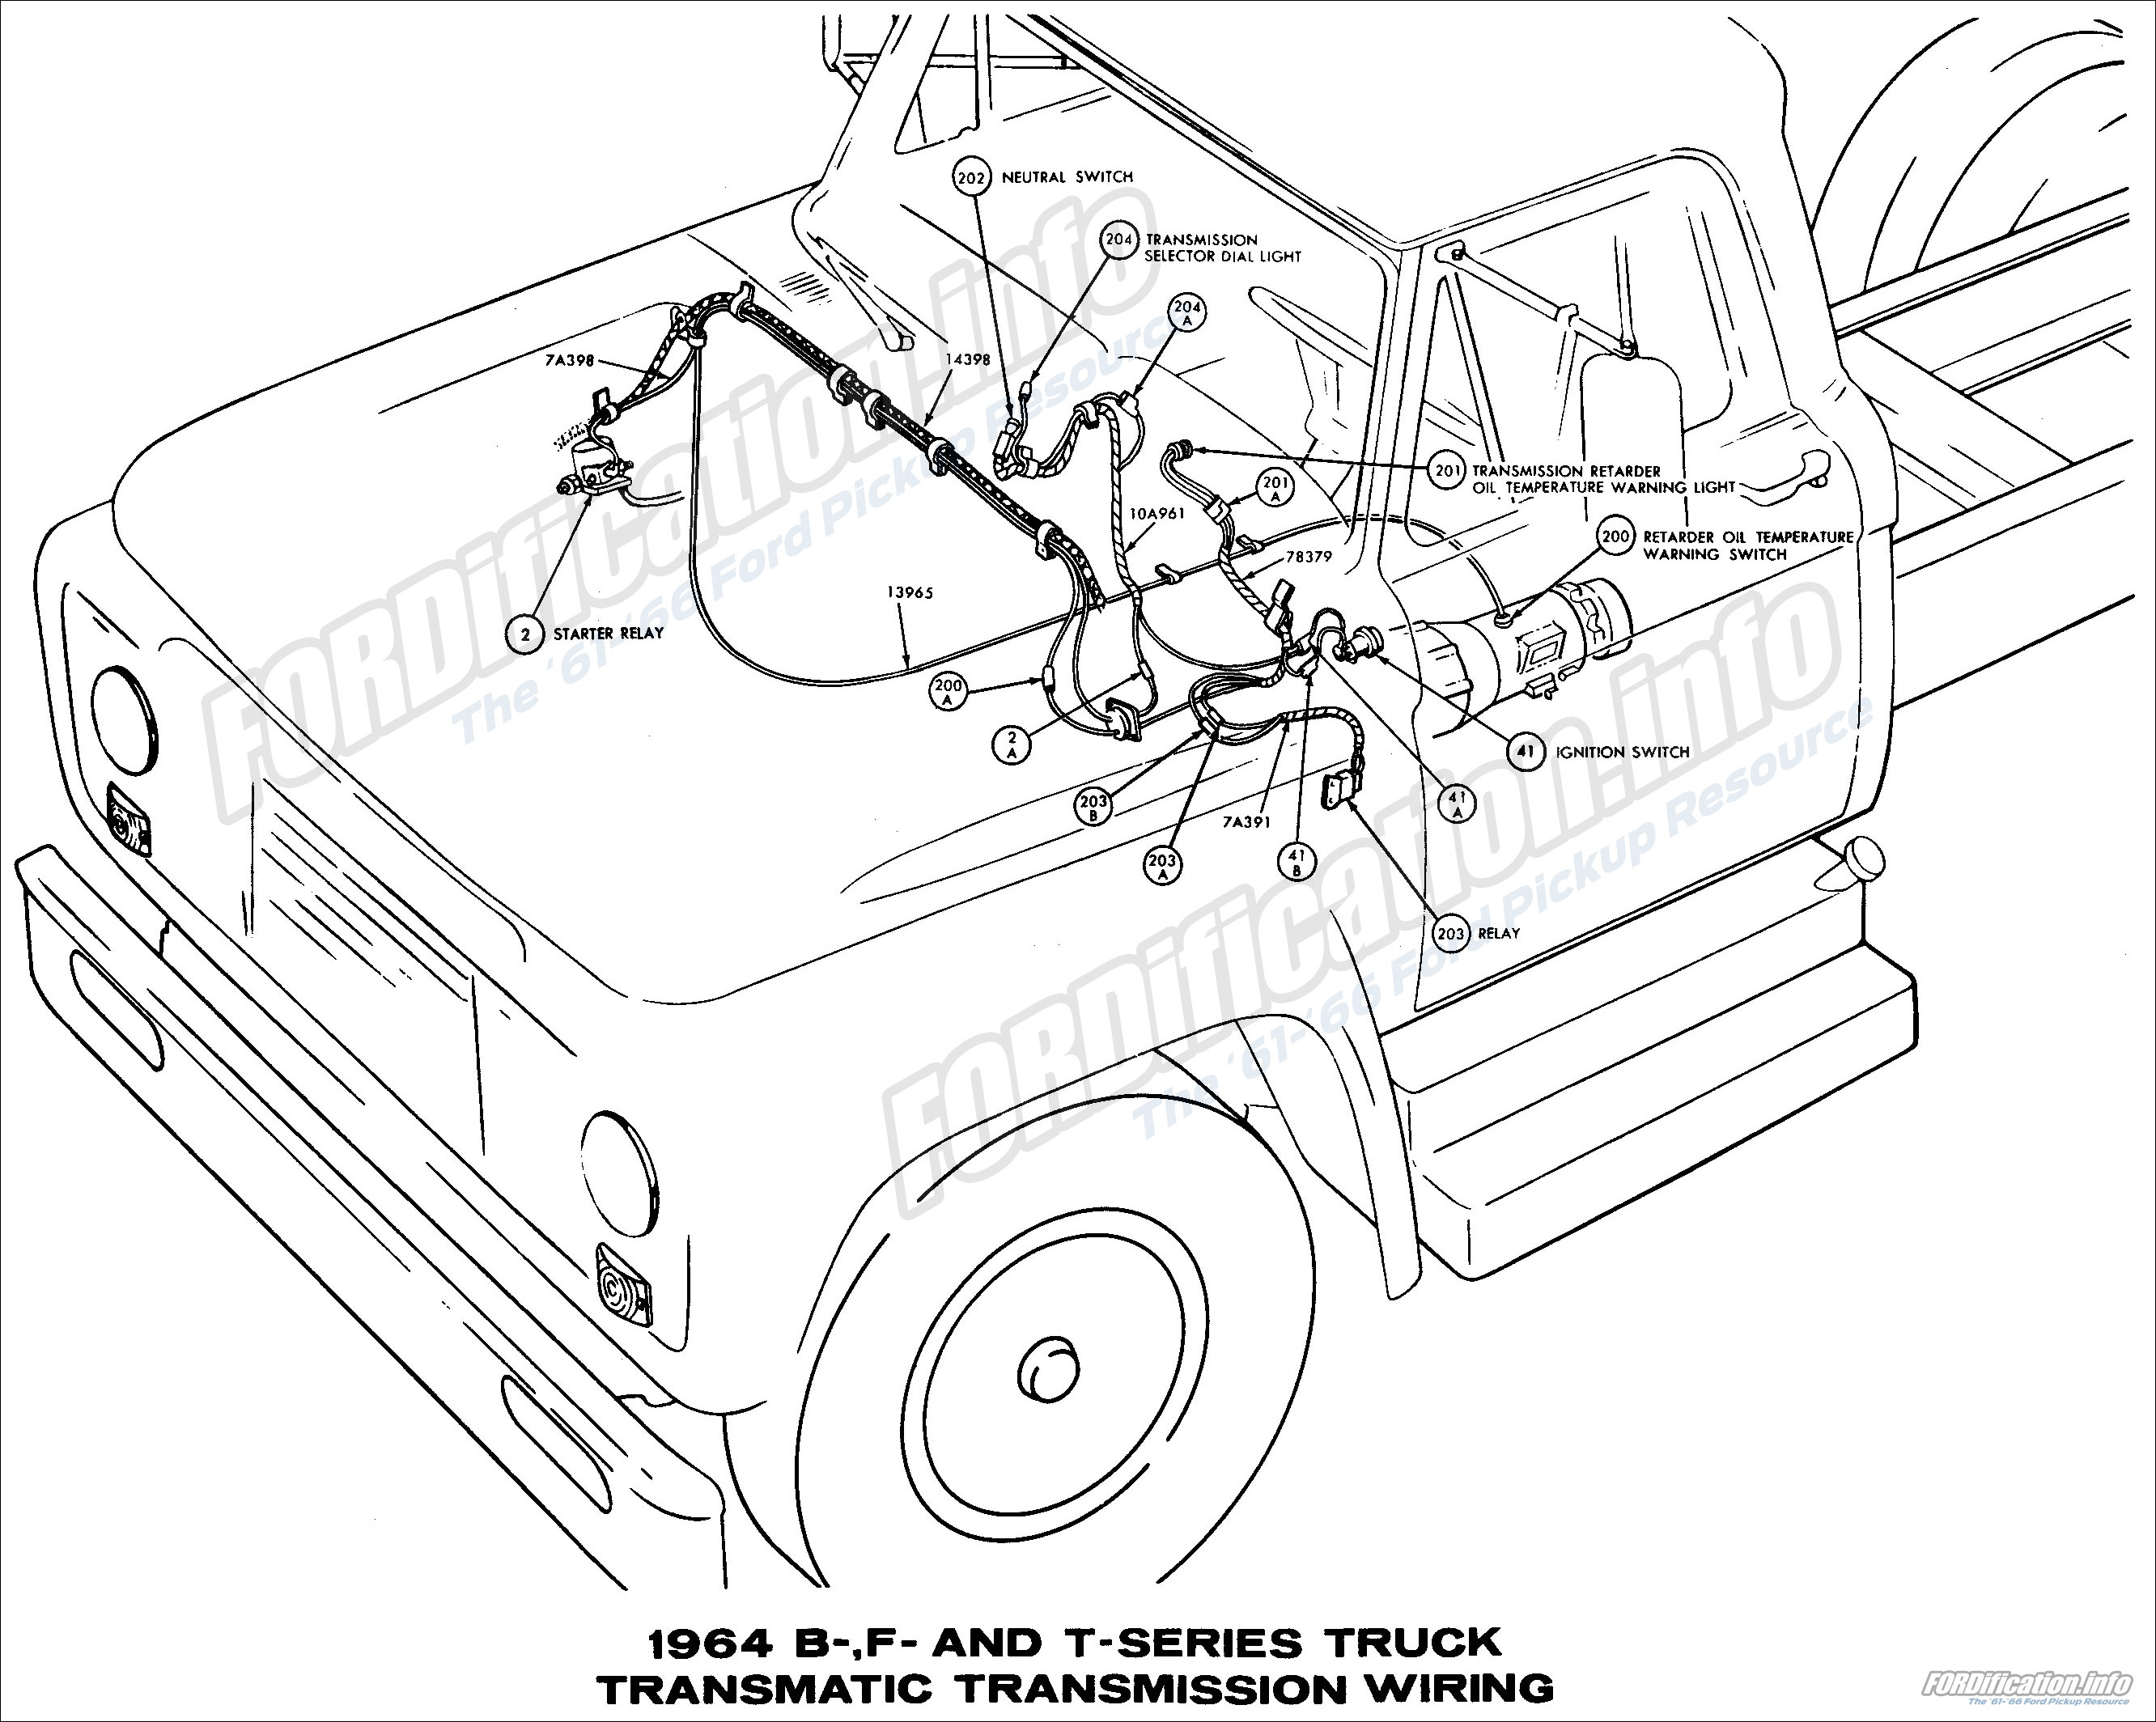 1964 Ford Truck Wiring Diagrams - FORDification.info - The '61-'66 Underhood Wiring Diagrams For Ford F on 1964 ford f100 frame, 1930 ford model a wiring diagram, 1964 ford f100 power steering, 1964 ford f100 fuel gauge, 1964 pontiac gto wiring diagram, 1964 ford f100 brakes, 1964 ford mustang wiring diagram, 1976 chevy corvette wiring diagram, 1964 ford f100 seats, 1964 ford f100 transmission, 1964 ford ignition switch diagram, 1964 ford f100 heater, 79 mustang wiring diagram, 1962 ford fairlane wiring diagram, 1985 ford f-250 wiring diagram, 1964 ford f100 carburetor, ford 6 cylinder engine diagram, 1964 ford f100 wheels, 1964 buick skylark wiring diagram, 1964 ford ranchero wiring-diagram,